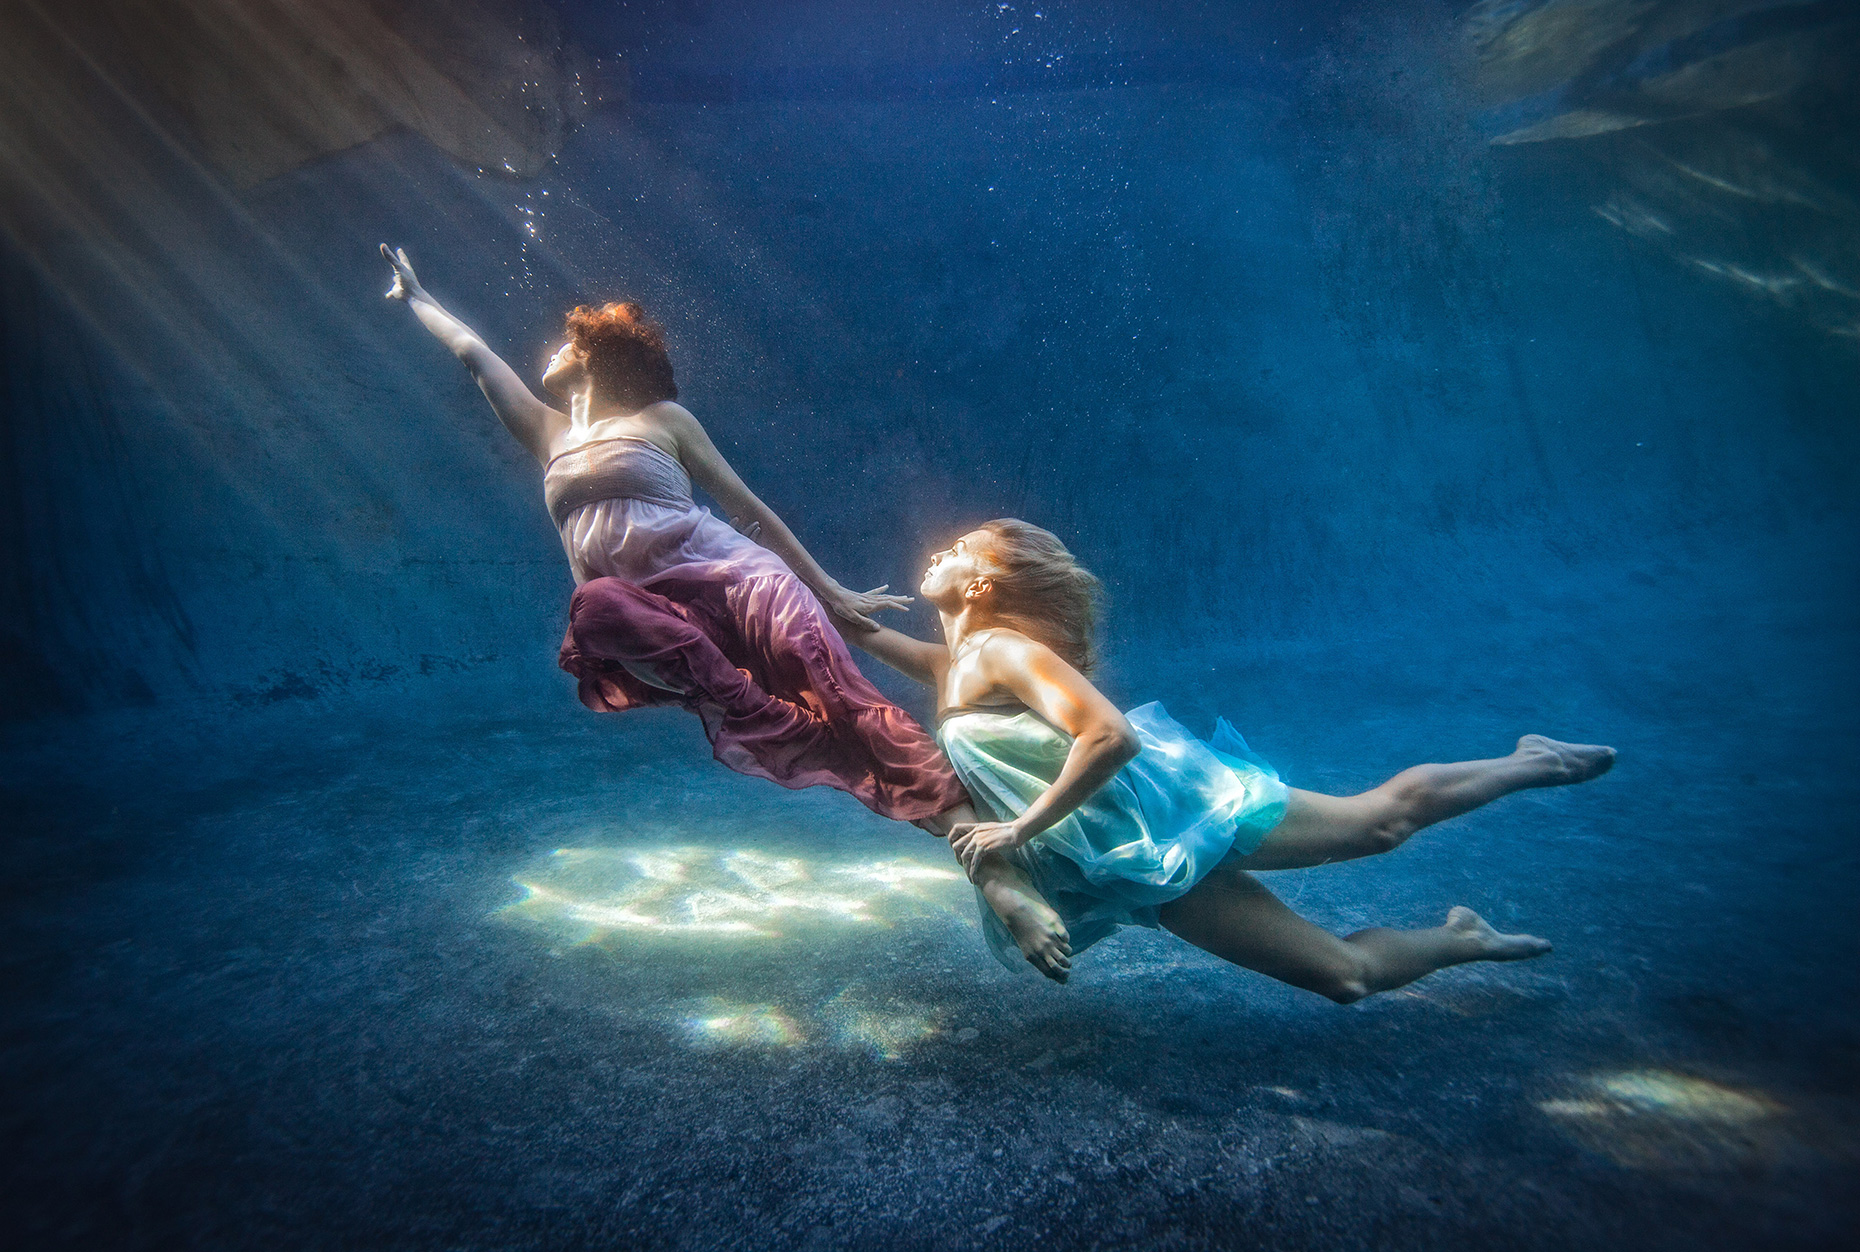 Under water chase two women chasing each other wearing dresses